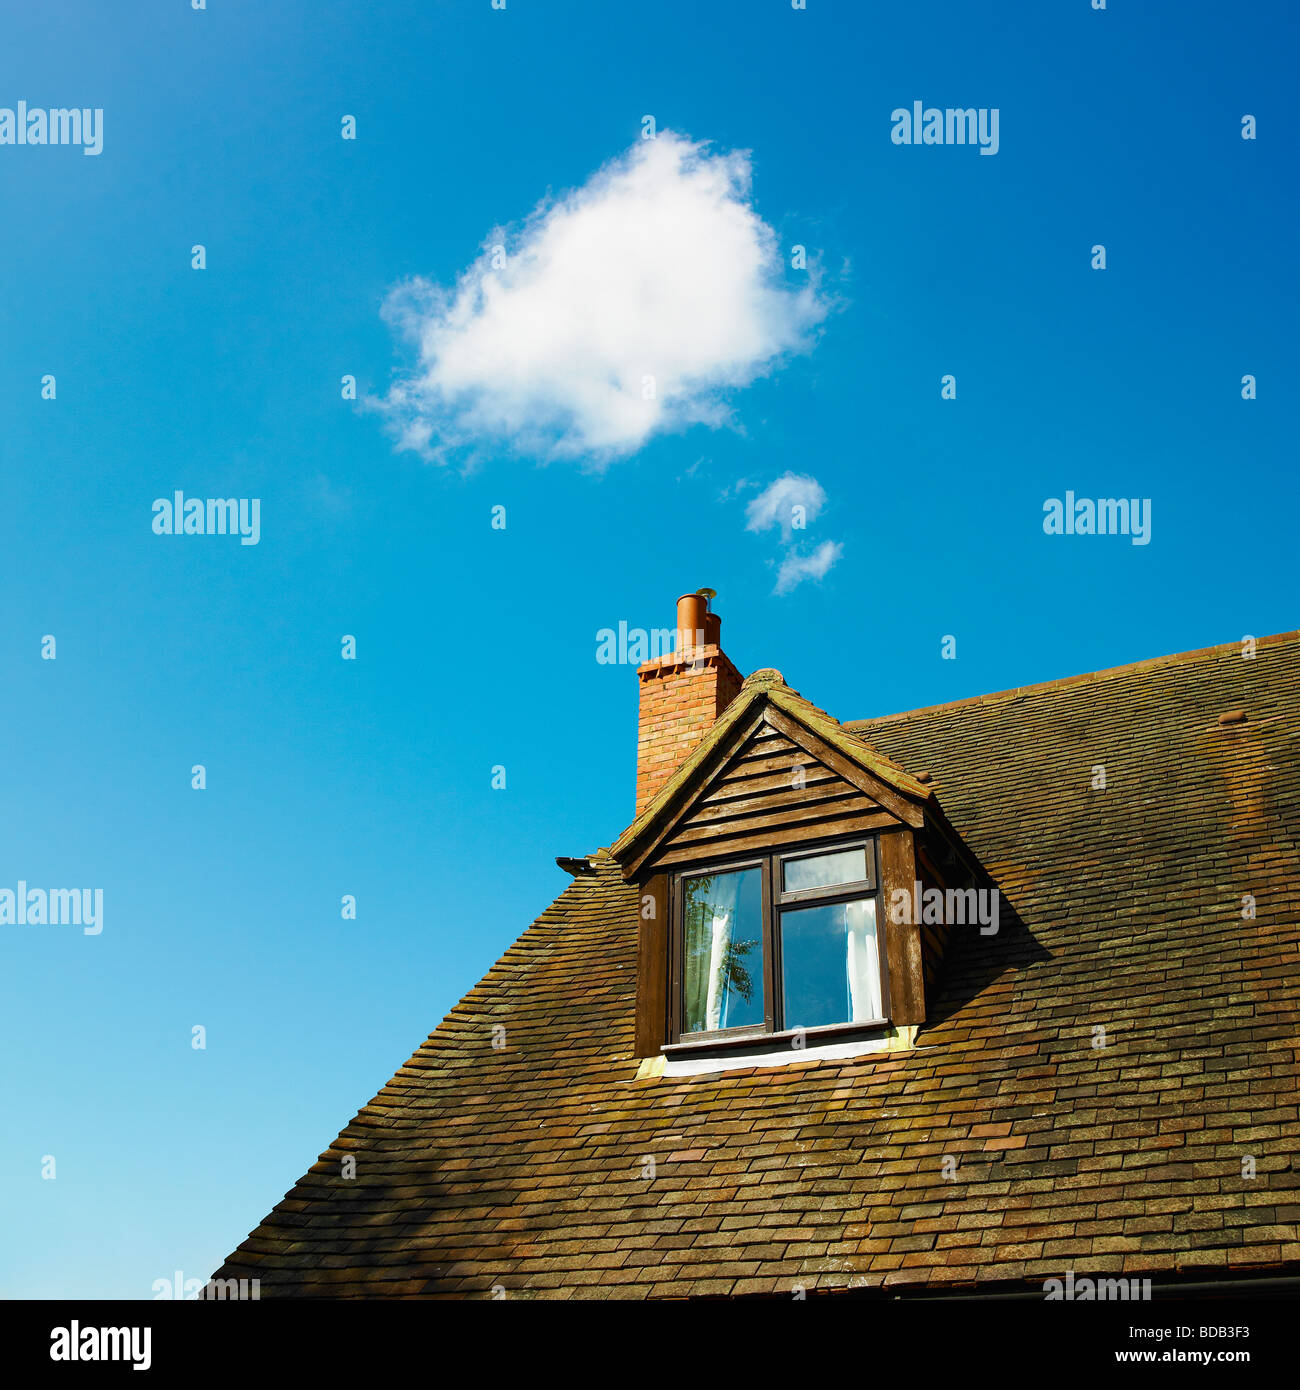 Chambre avec ciel bleu et nuage - cloud computing - home office. Photo Stock